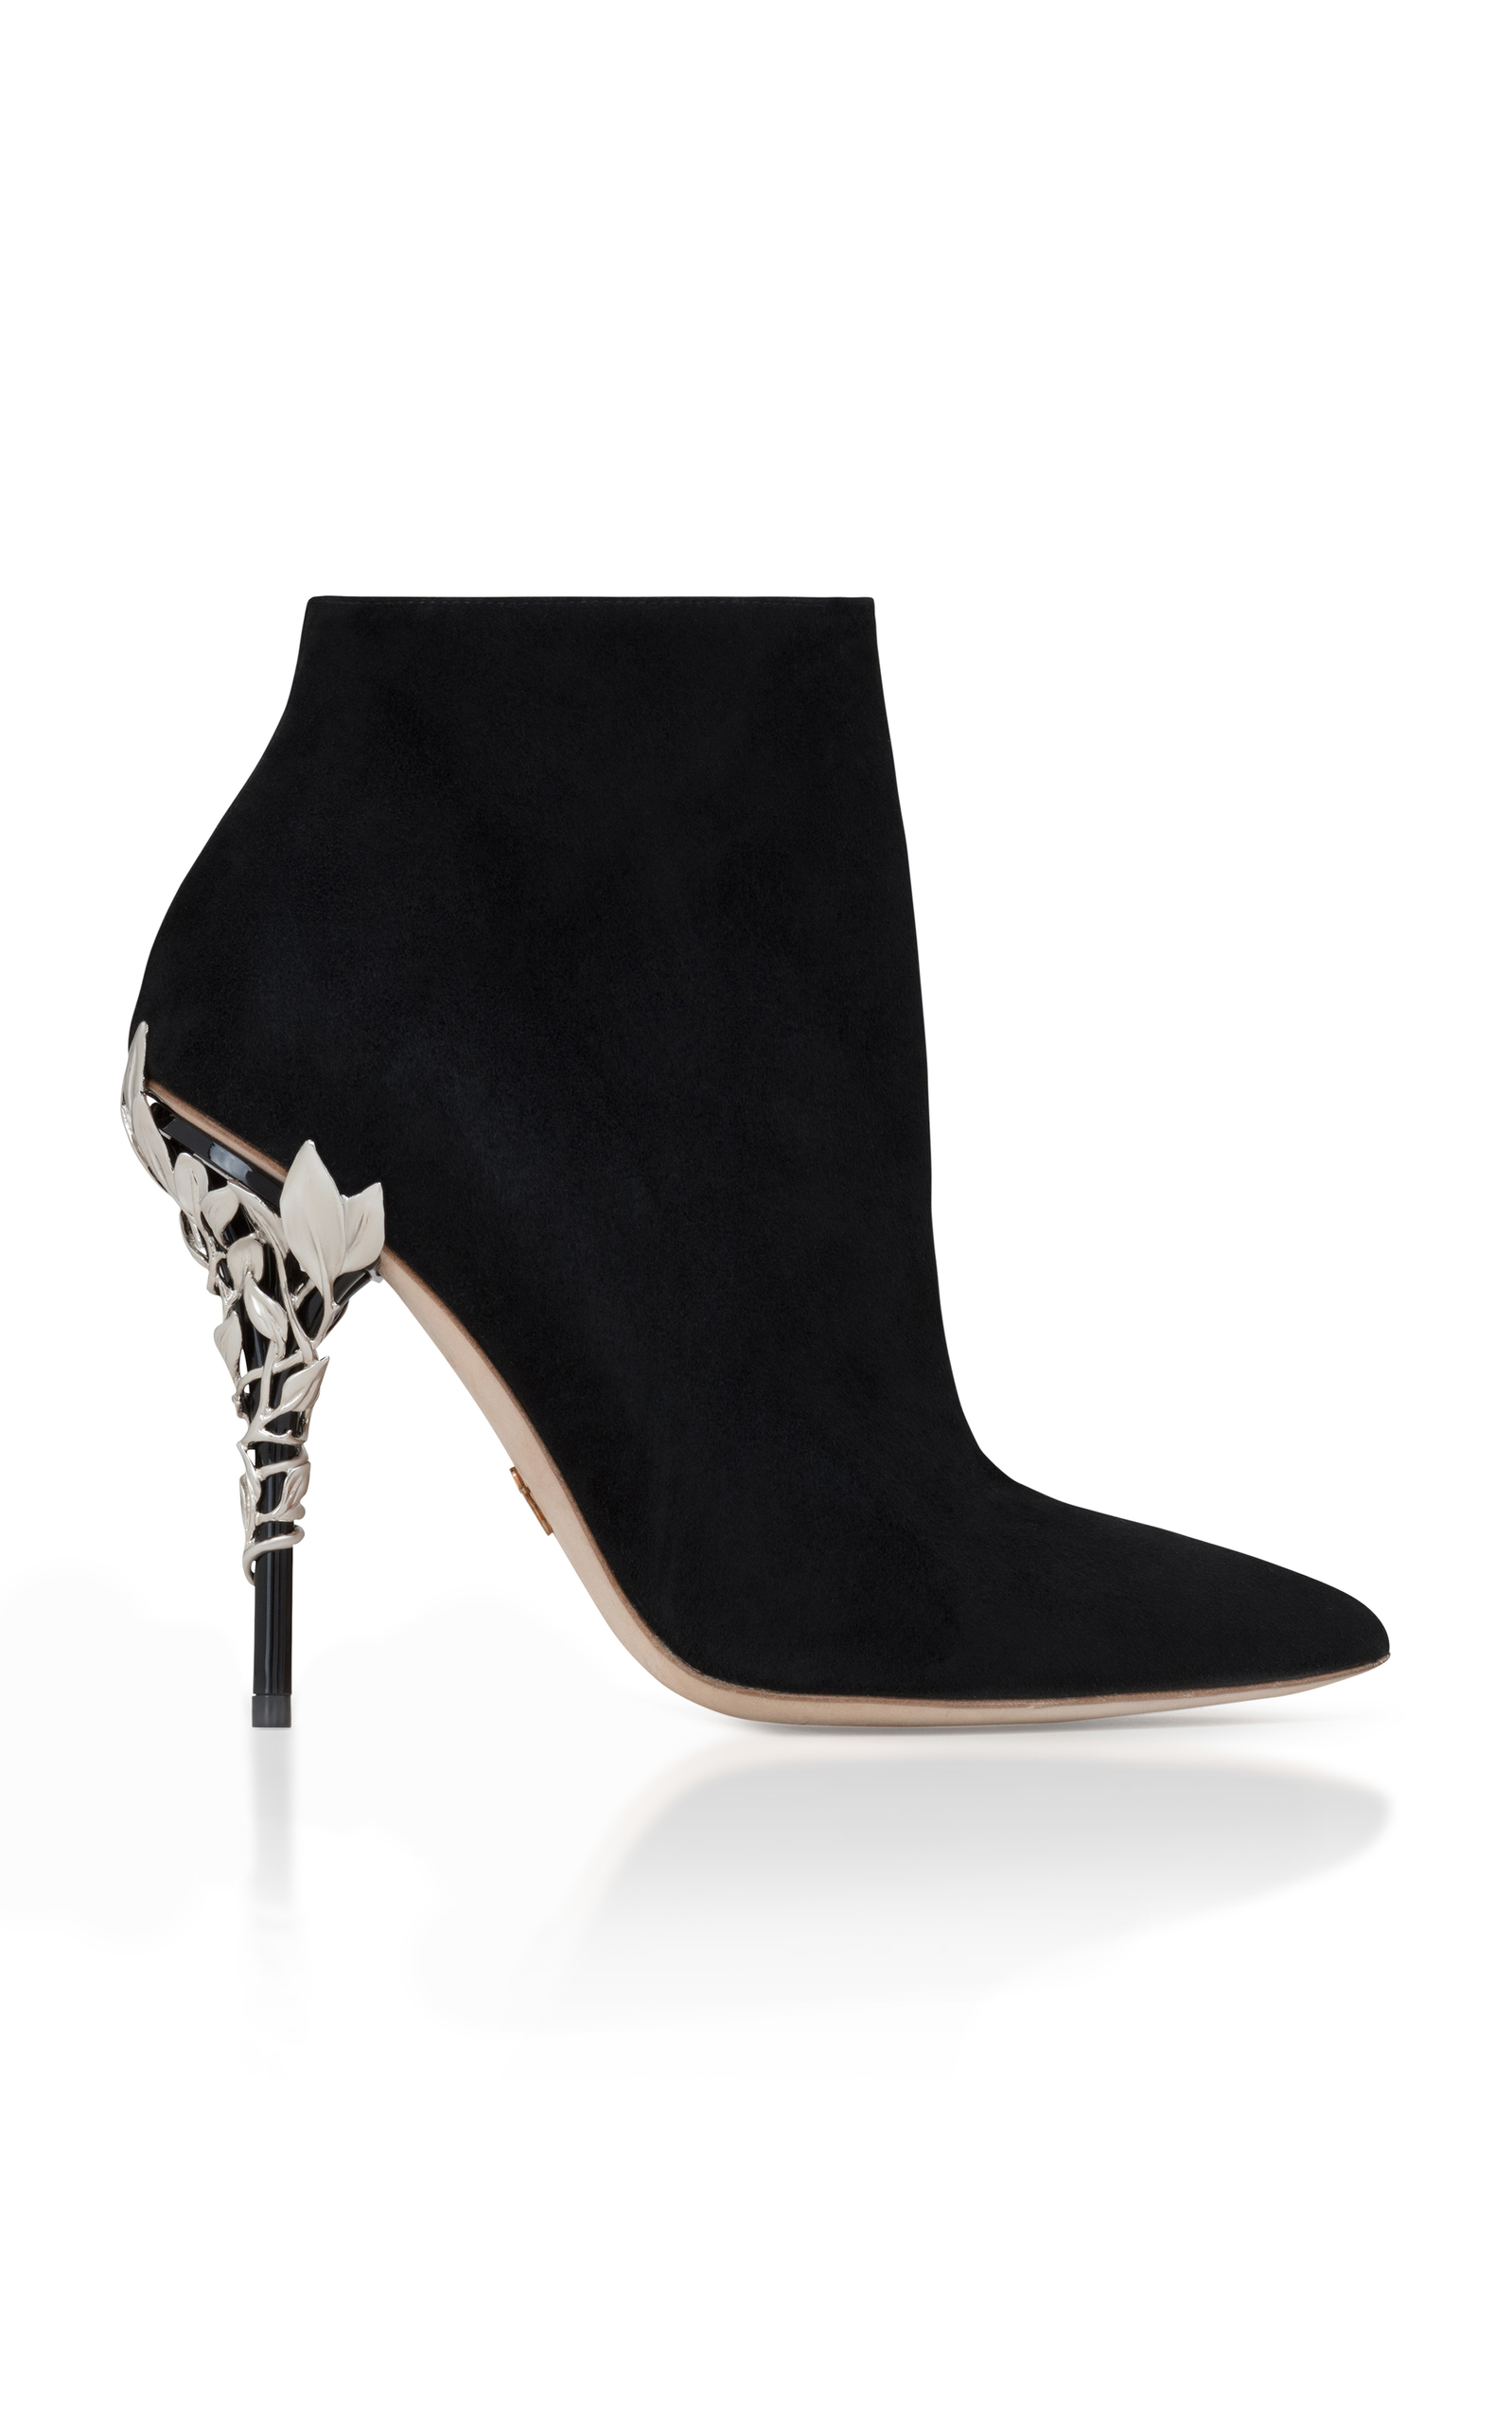 61fa4358919 Eden Ankle Boot by Ralph Russo